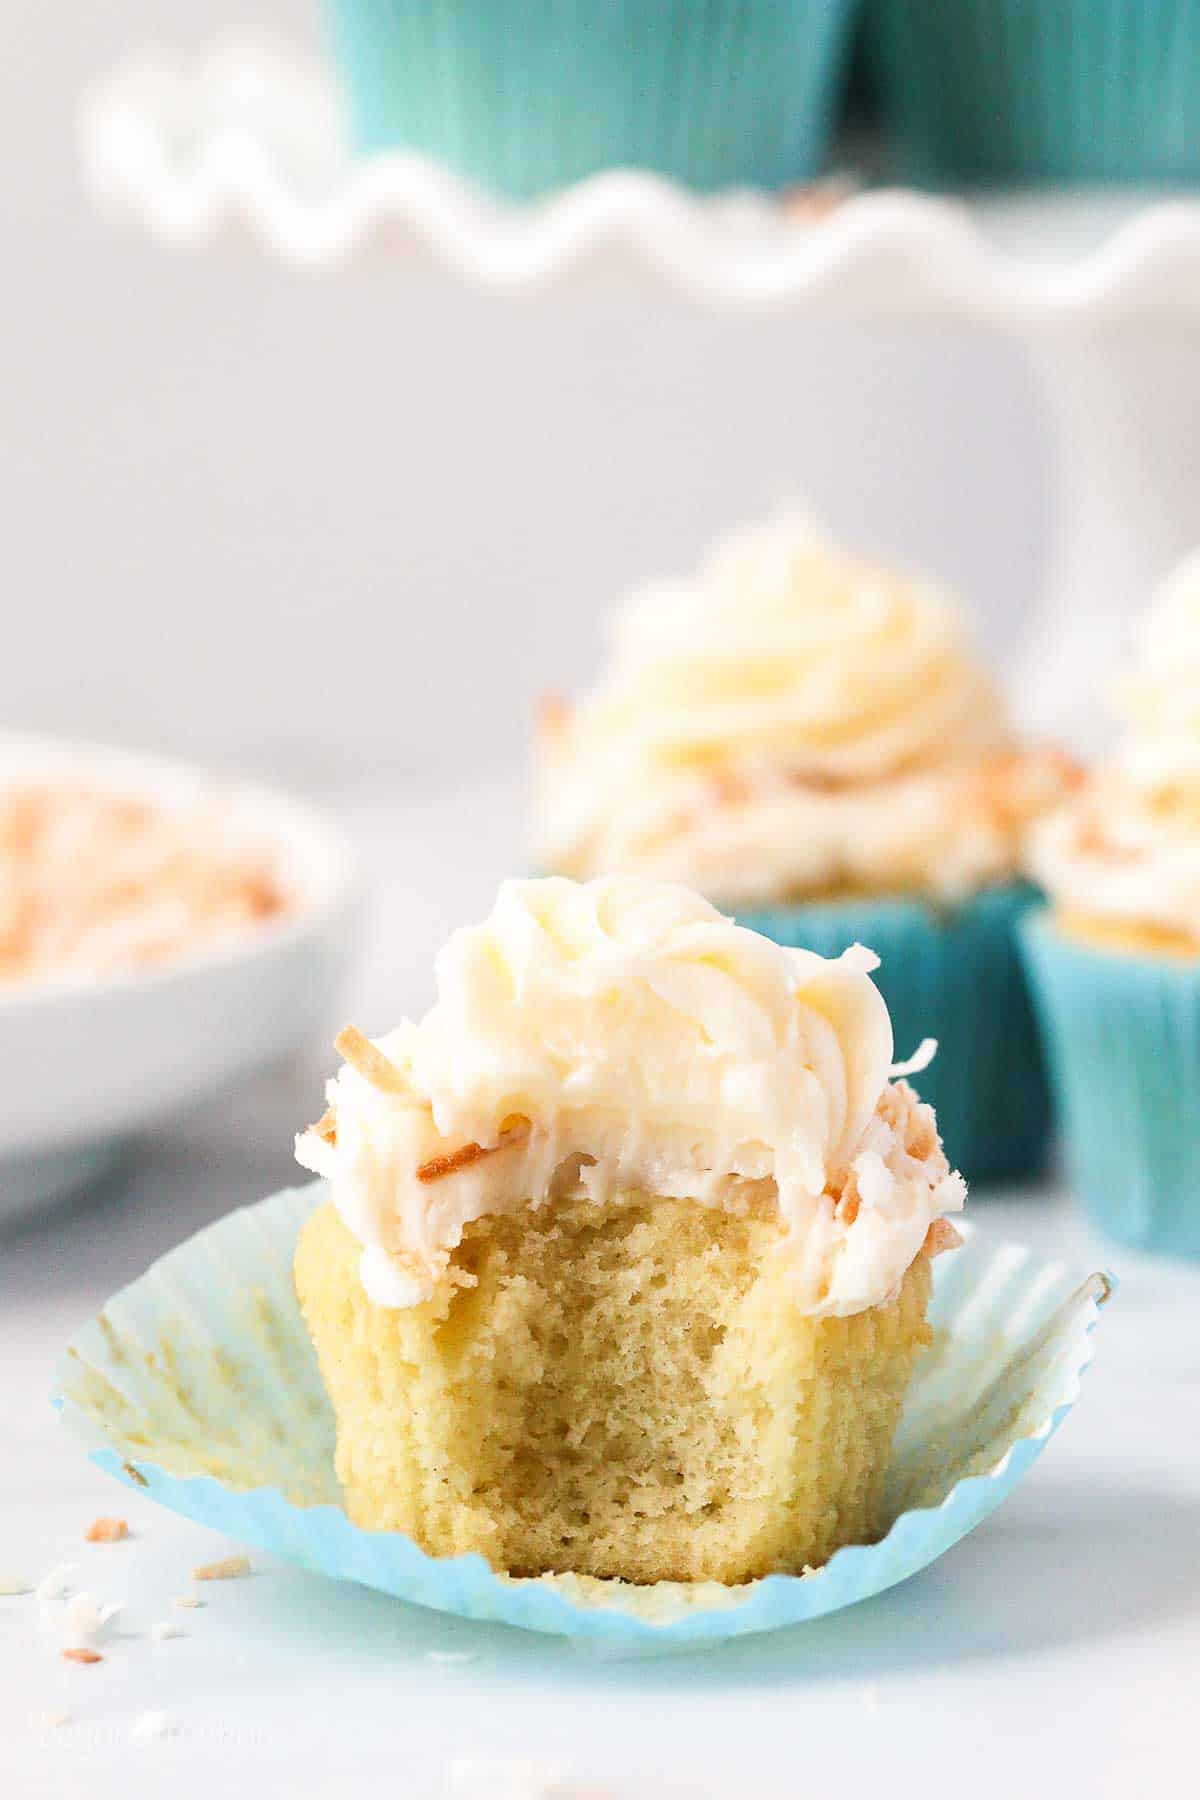 A coconut cupcake with frosting in a cupcake wrapper, with a bite missing.